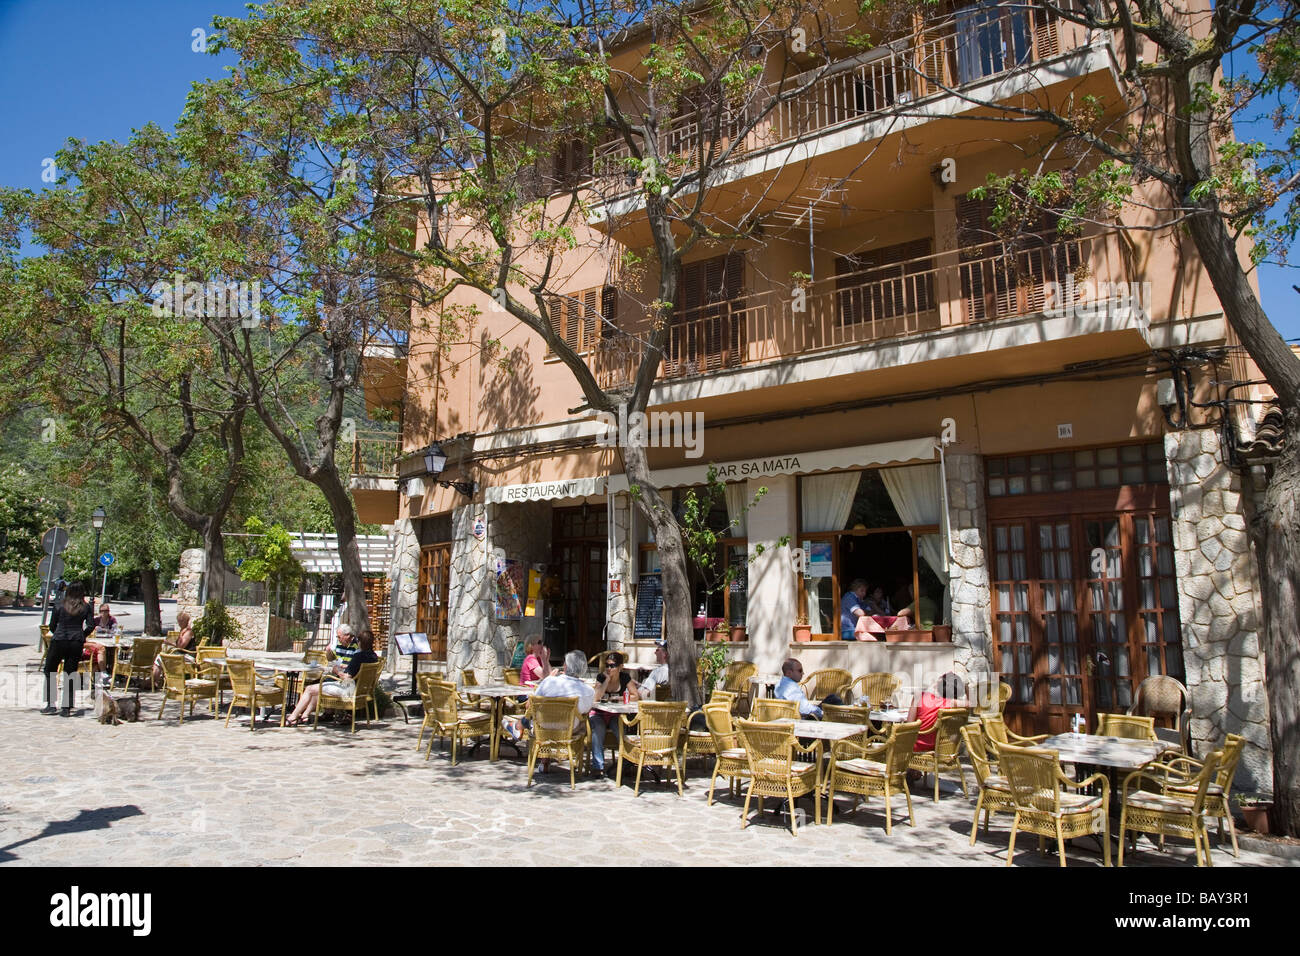 Outdoor Seating at Bar Sa Mata, Valldemossa, Mallorca, Balearic Islands, Spain - Stock Image